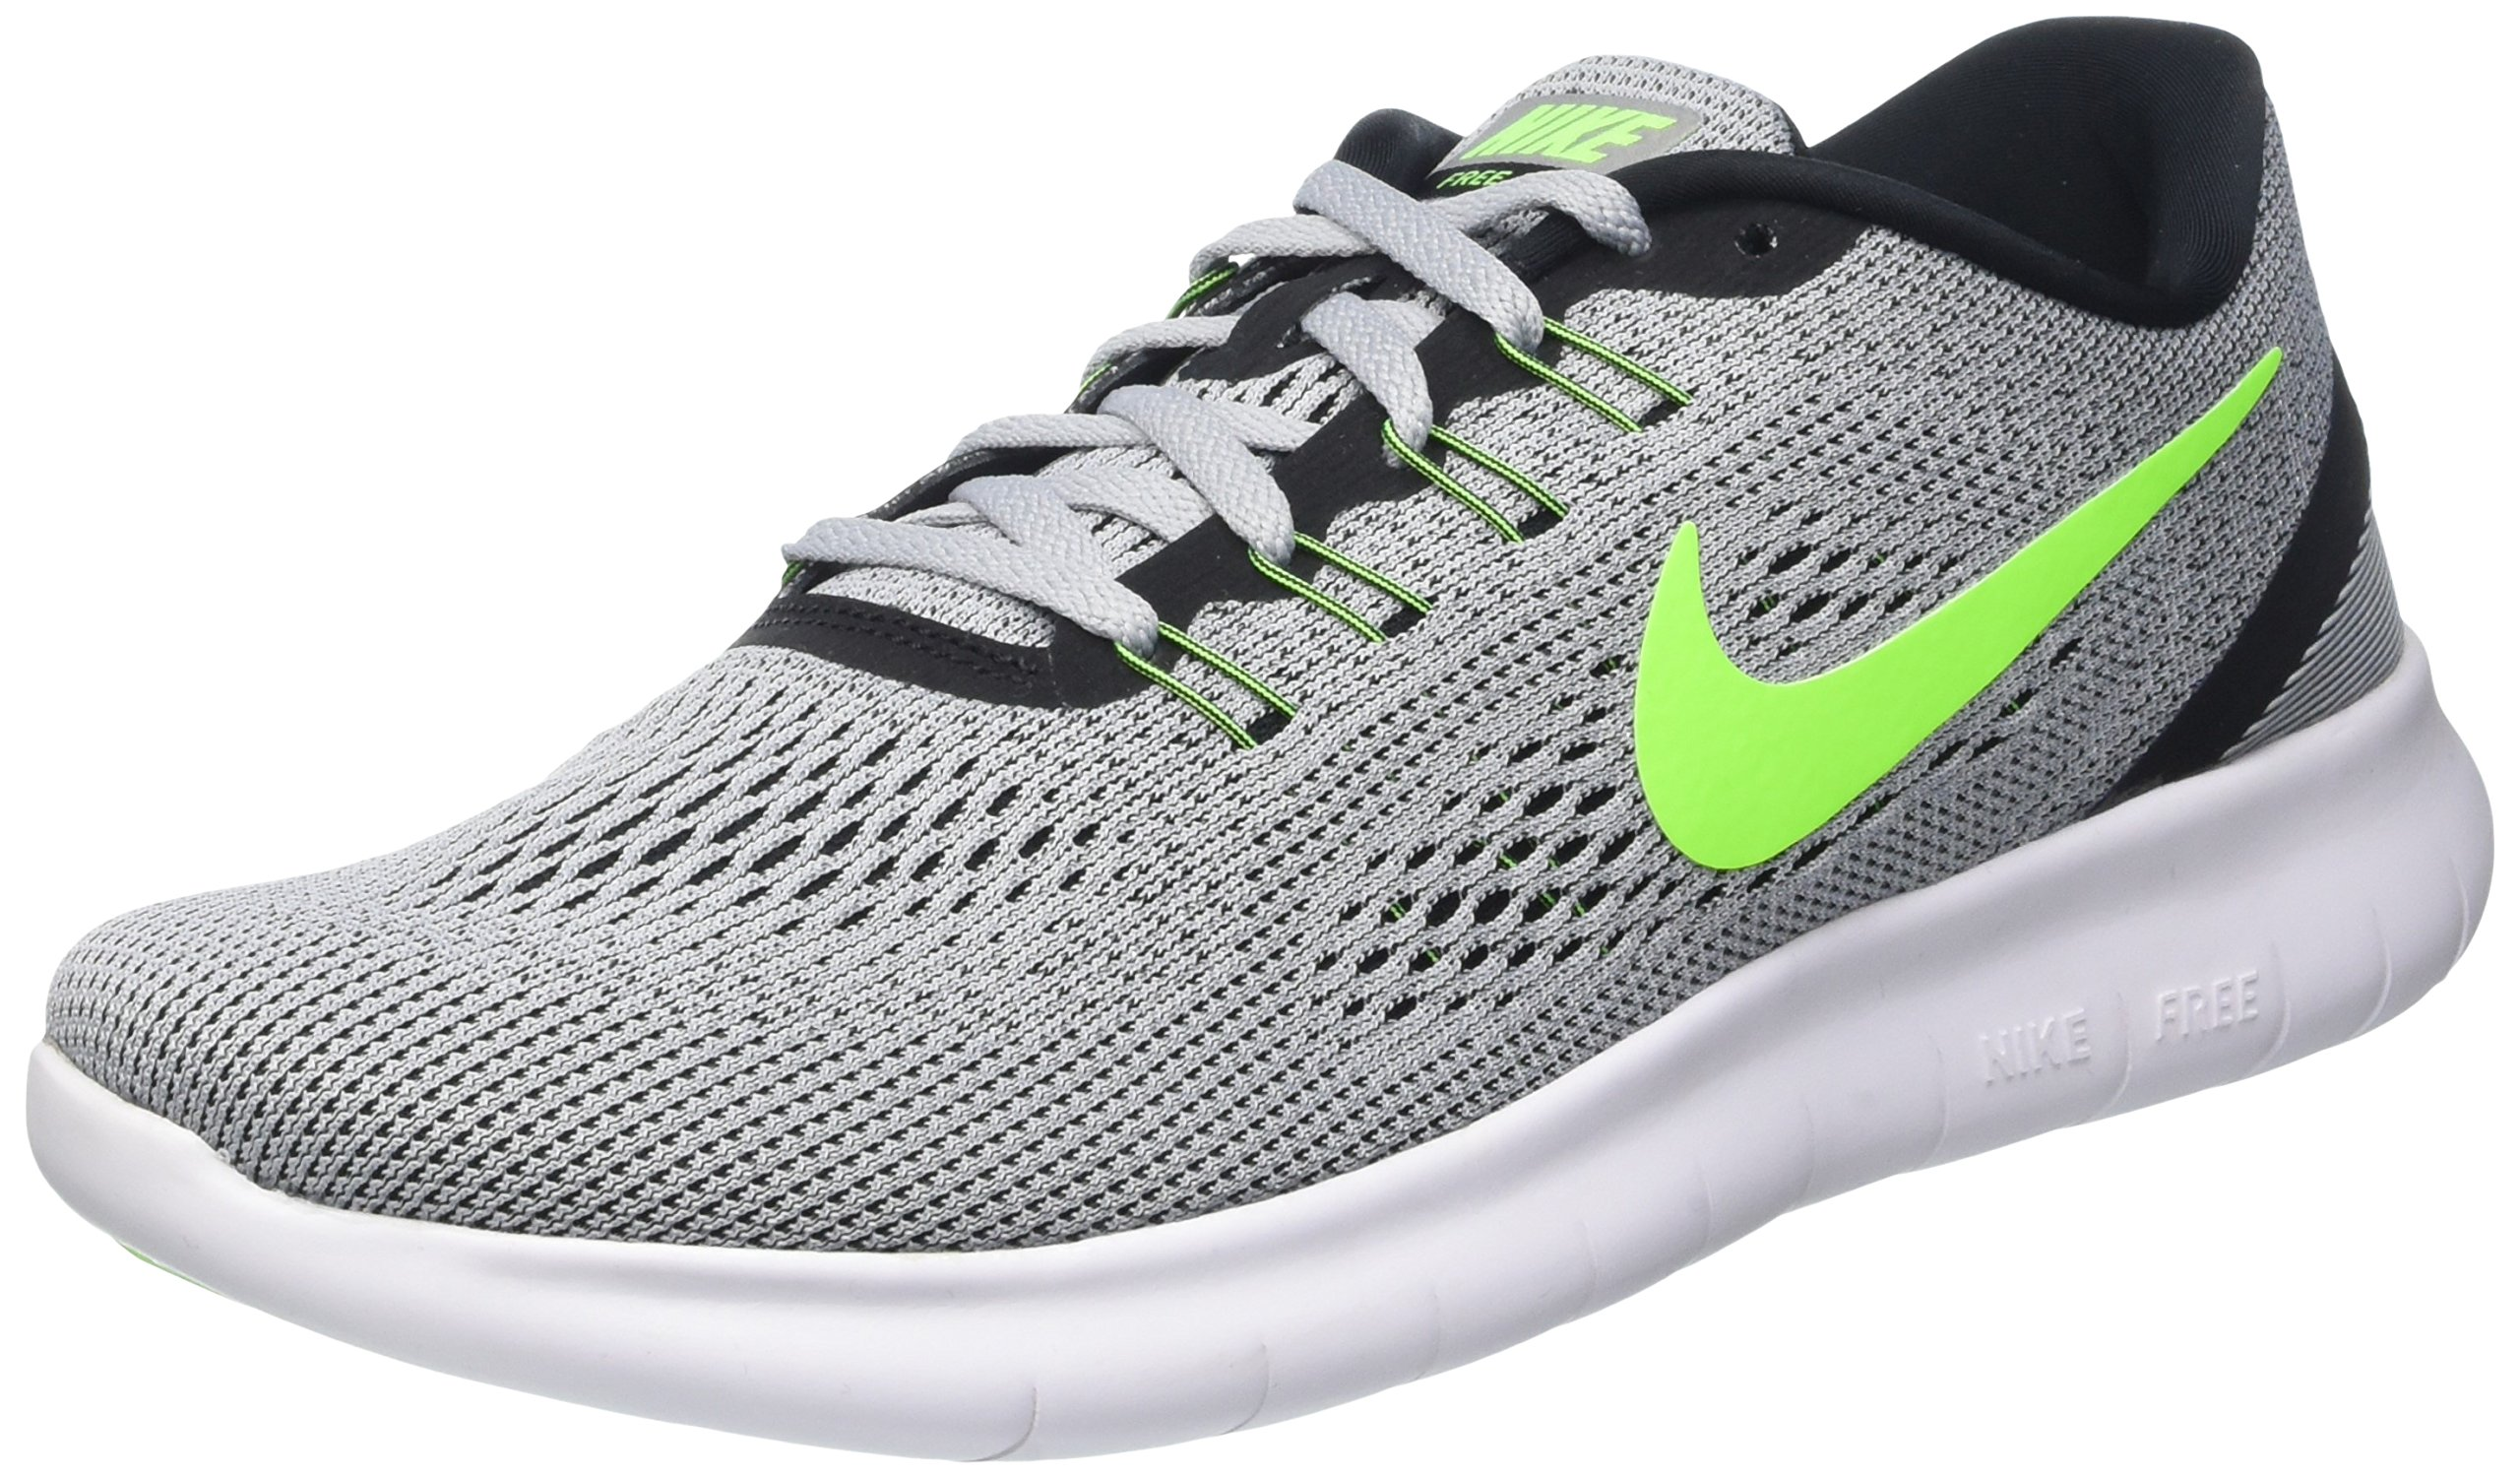 Nike Mens Free Rn Pure Platinum/Elctrc Grn/Anthracite Running Shoe 8 Men US by Nike (Image #1)